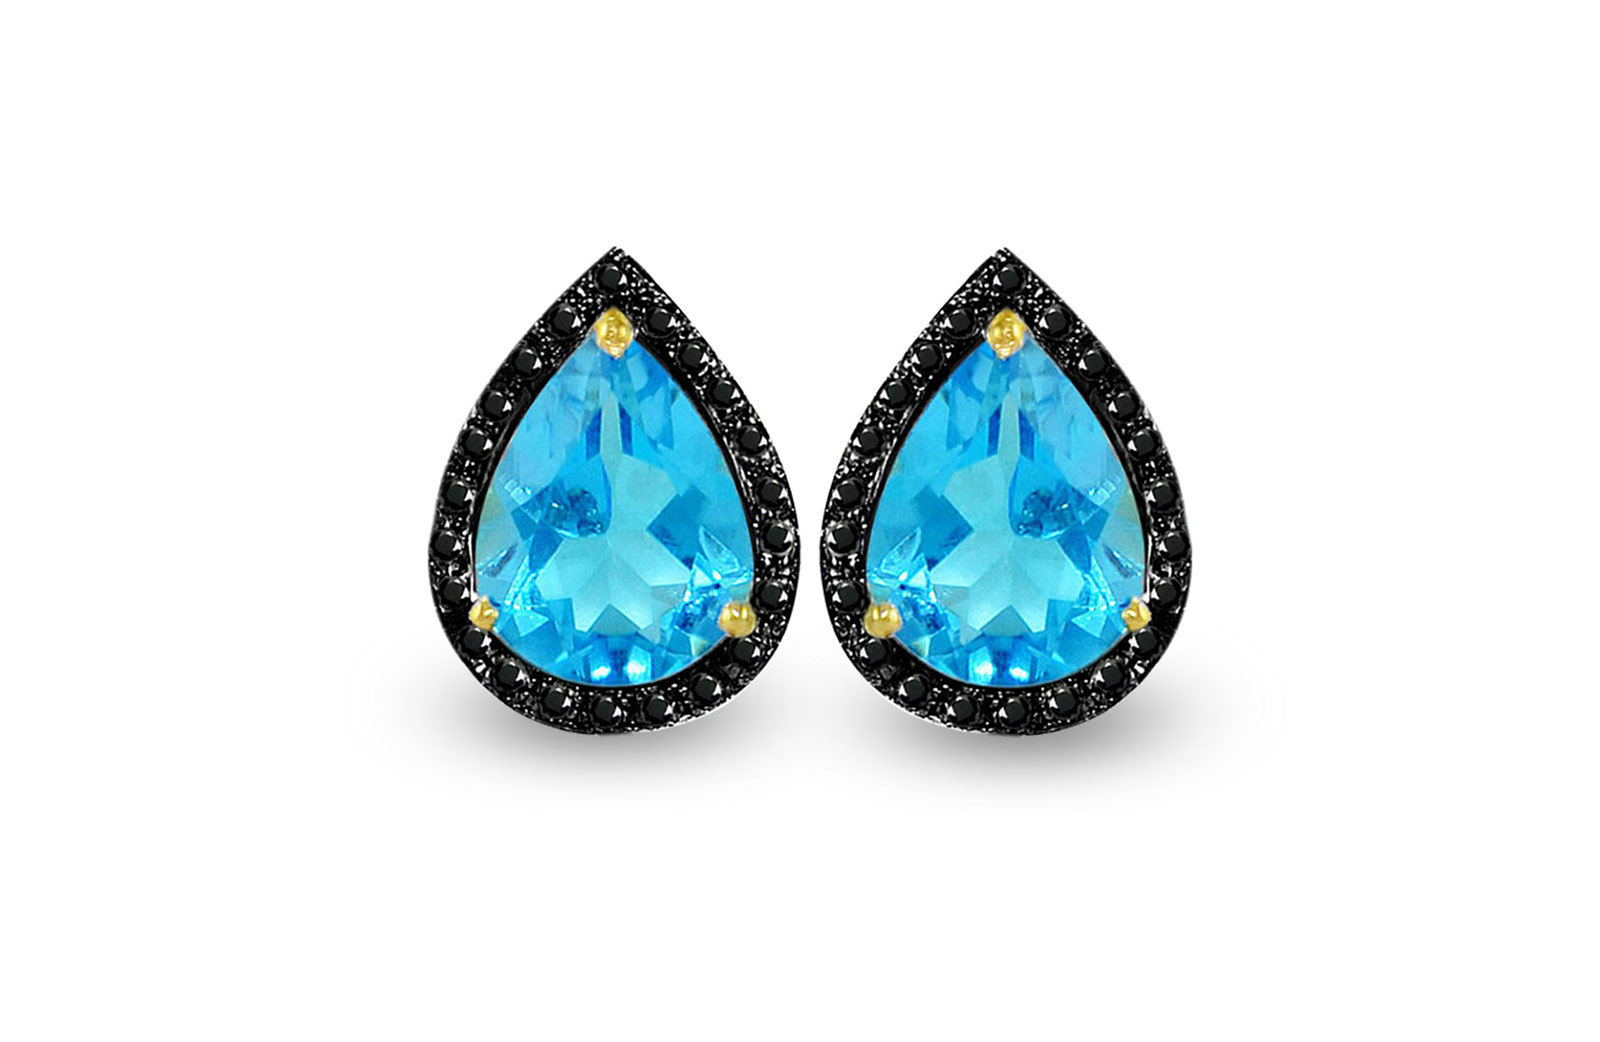 Vera Perla 18K Gold 0.24ct Black Diamonds,Topaz Earrings